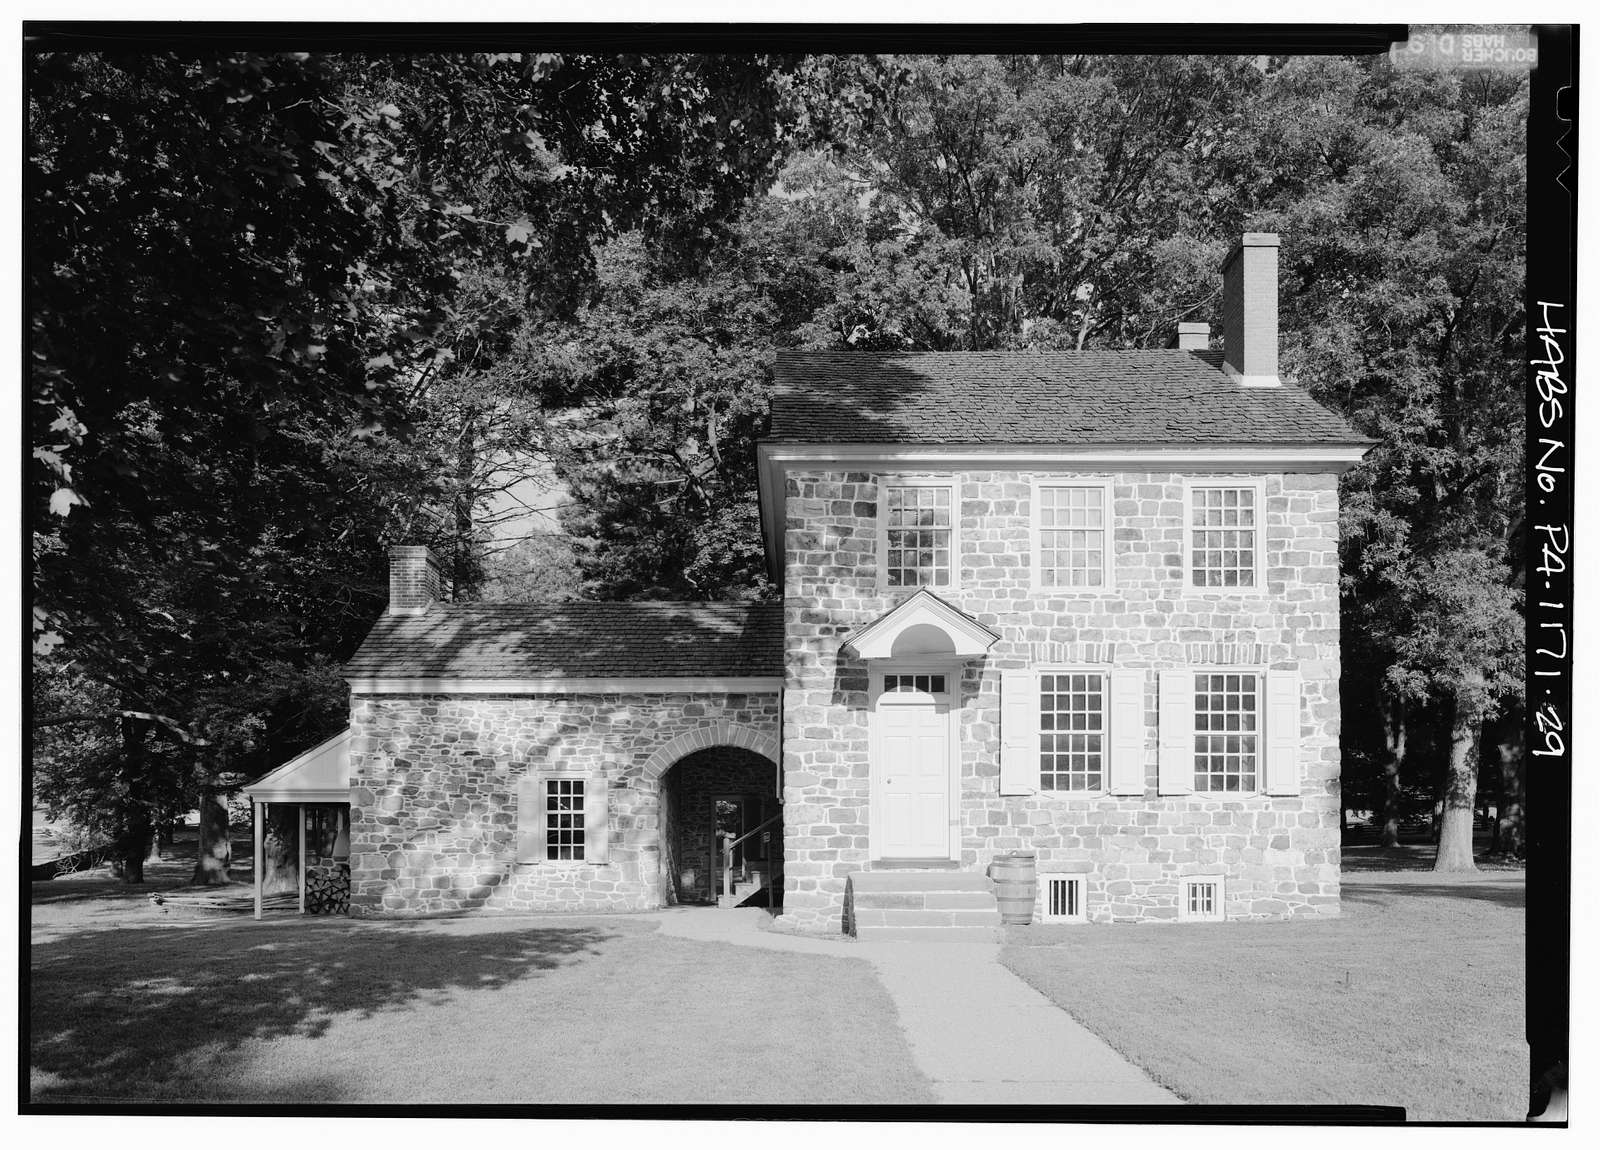 Isaac Potts House, South of Schuylkill River, King of Prussia, Montgomery County, PA